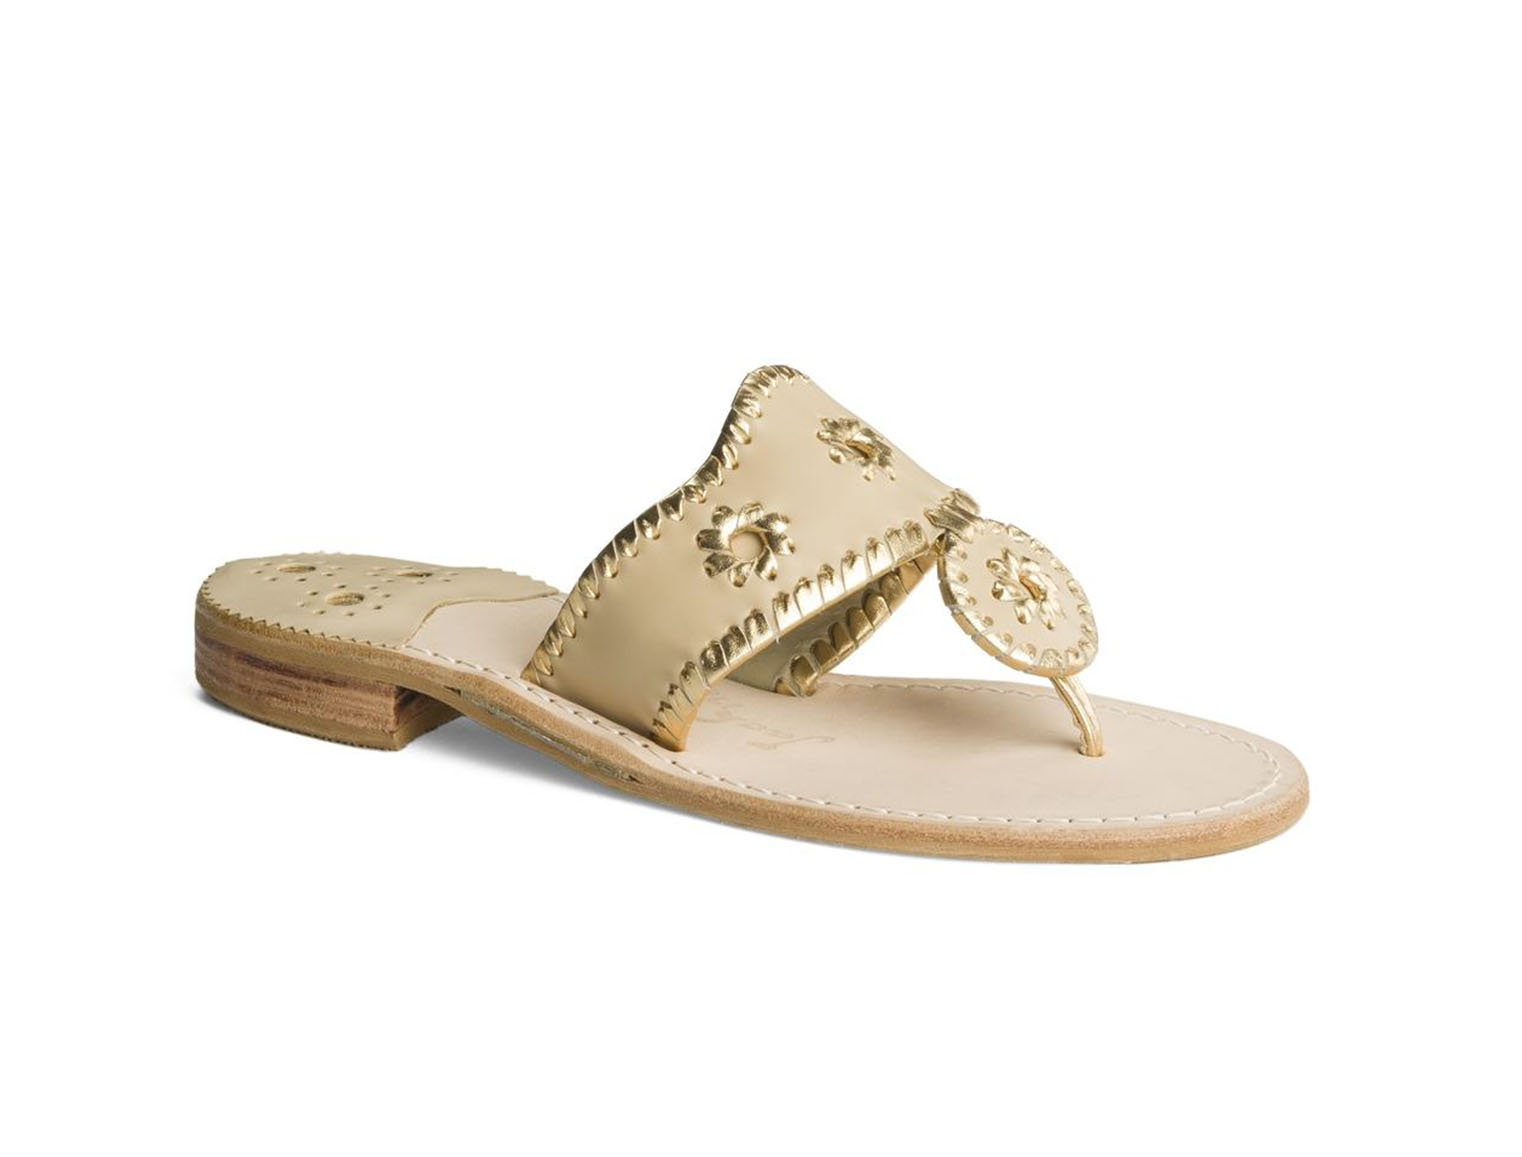 Jack Rogers Nantucket Gold Sandal